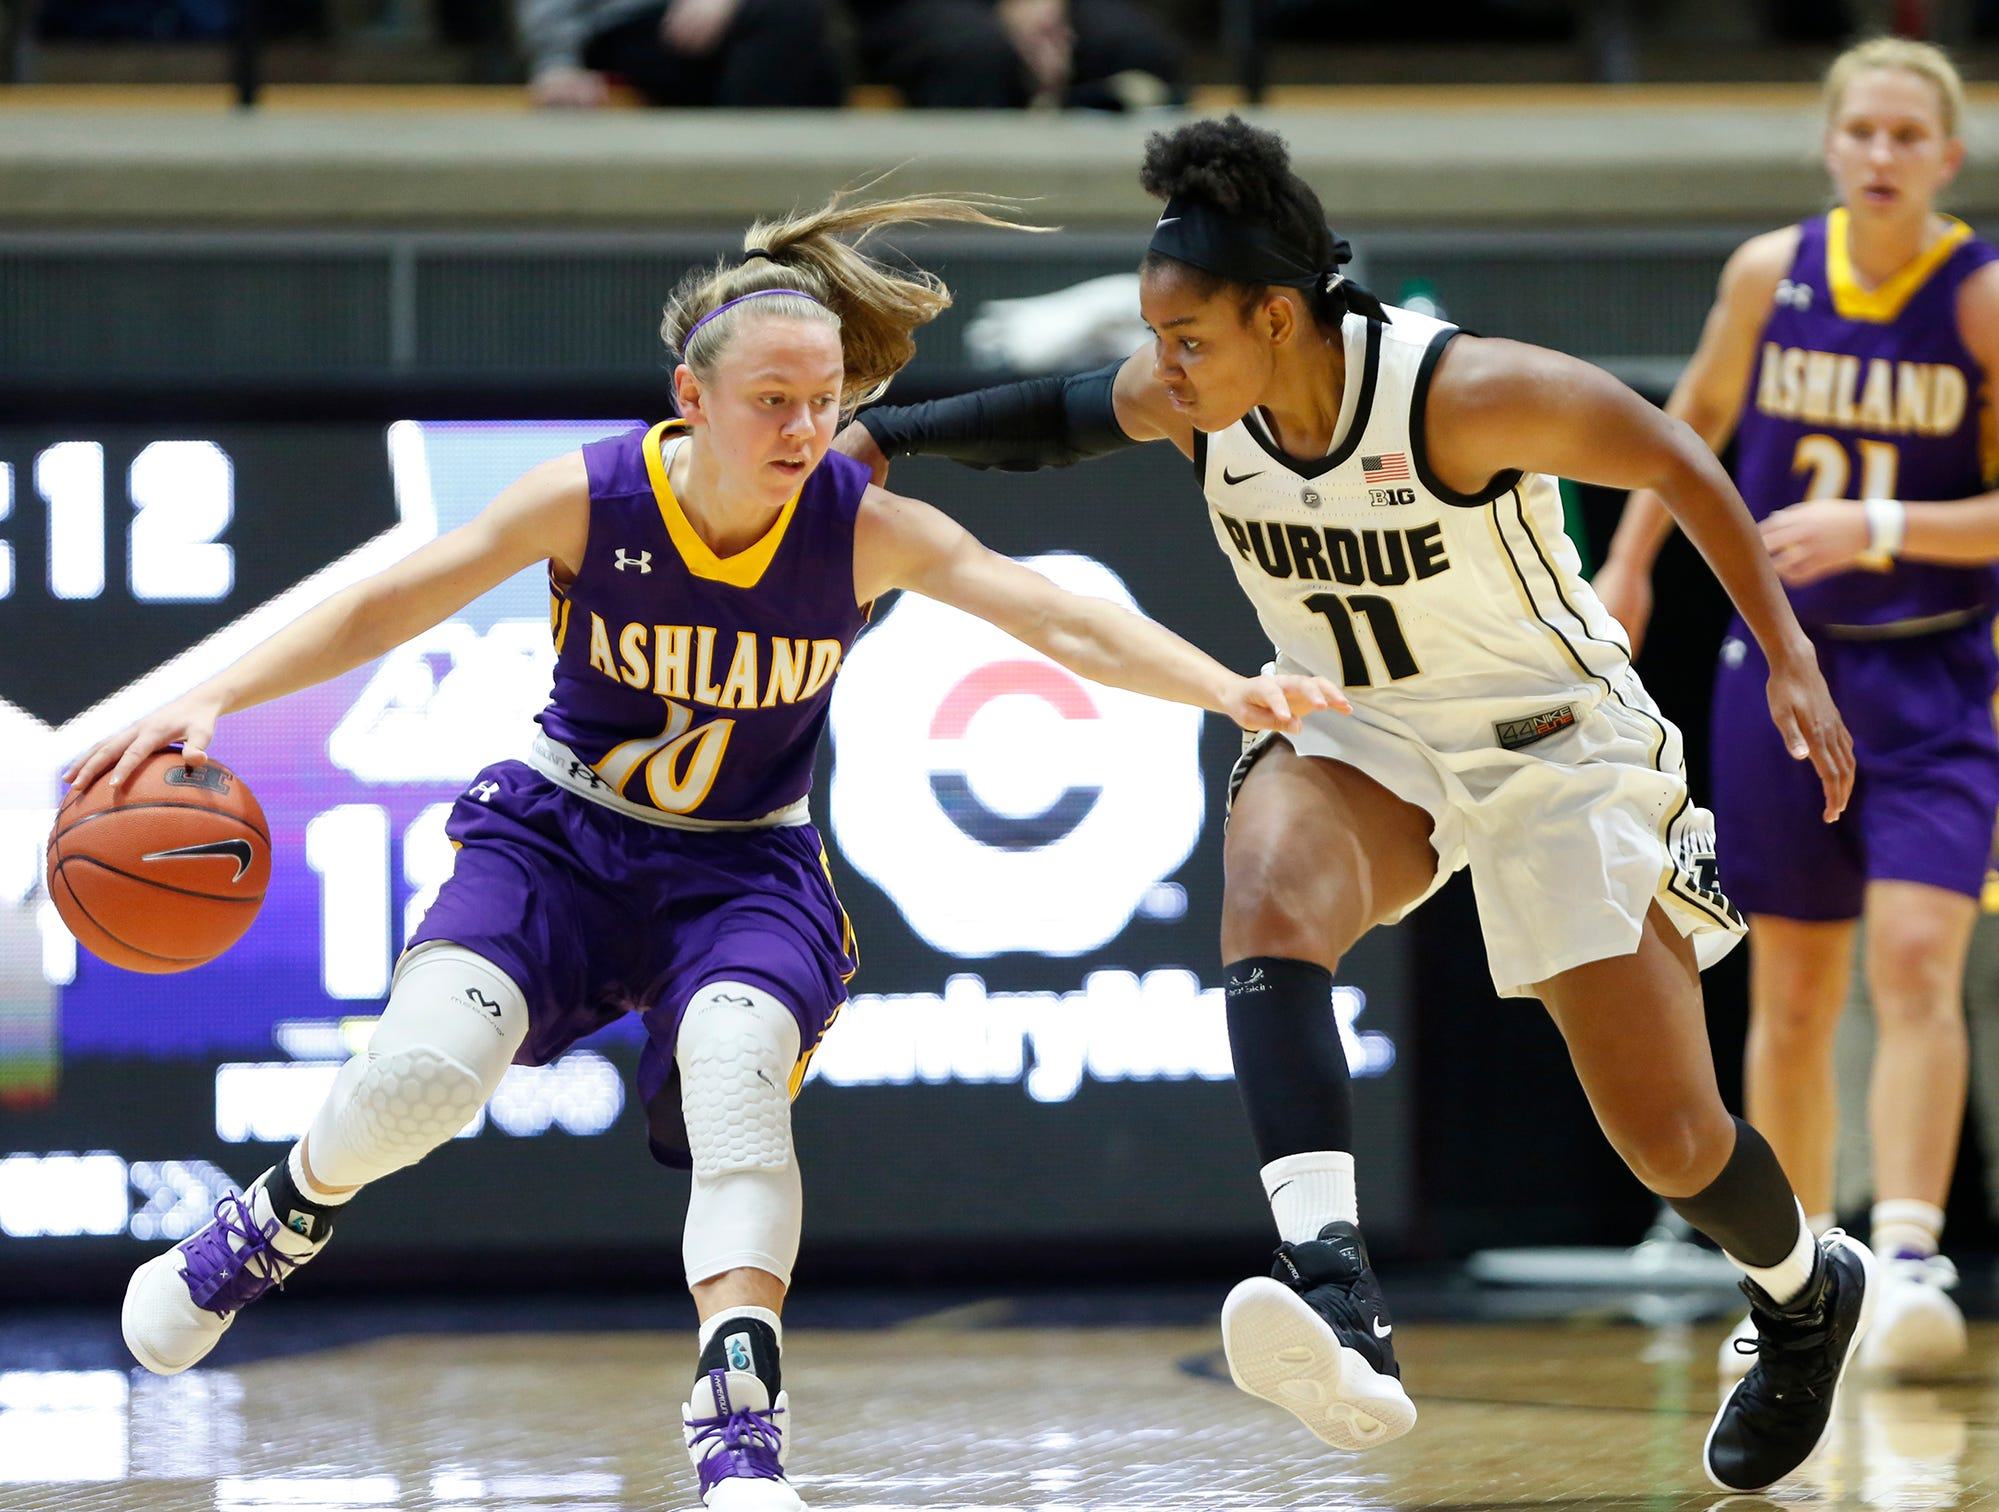 Dominique Oden of pressures Hallie Heidemann of Ashland Sunday, November 4, 2018, at Mackey Arena. Purdue defeated Ashland 85-69.